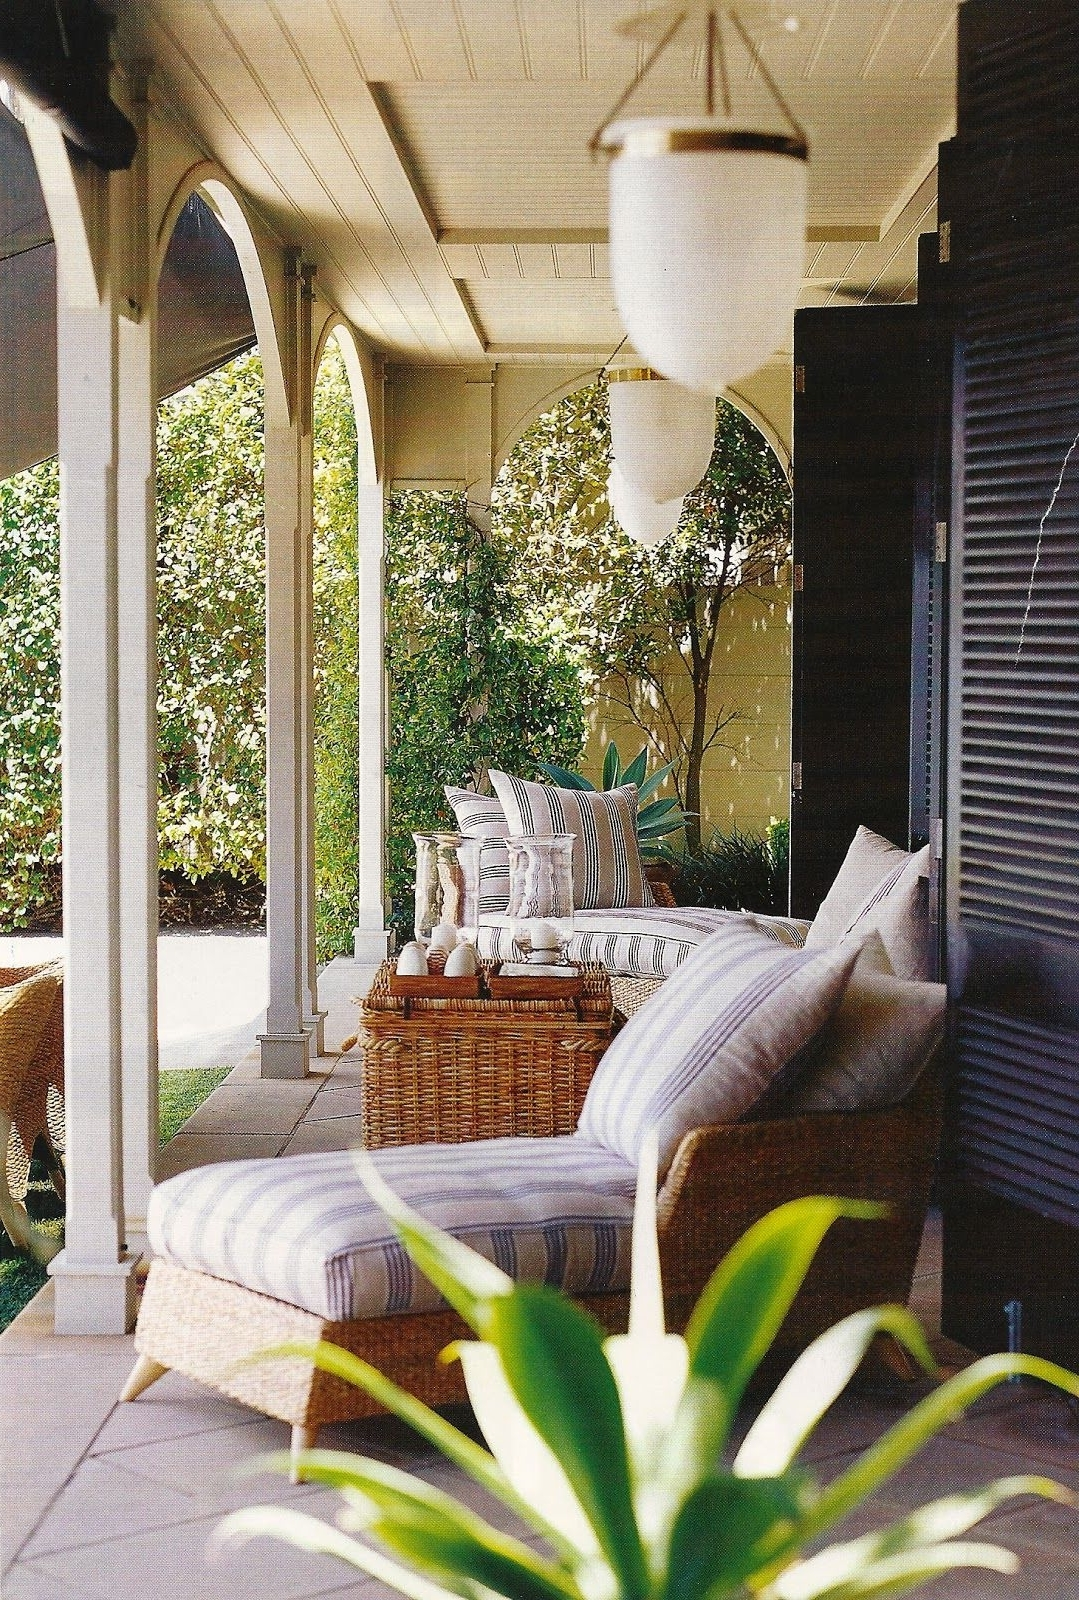 Most Up To Date Striped Chaise, Wicker Basket, Shells, Timber Veranda Detailing With Inside Outdoor Oversized Lanterns (View 8 of 20)